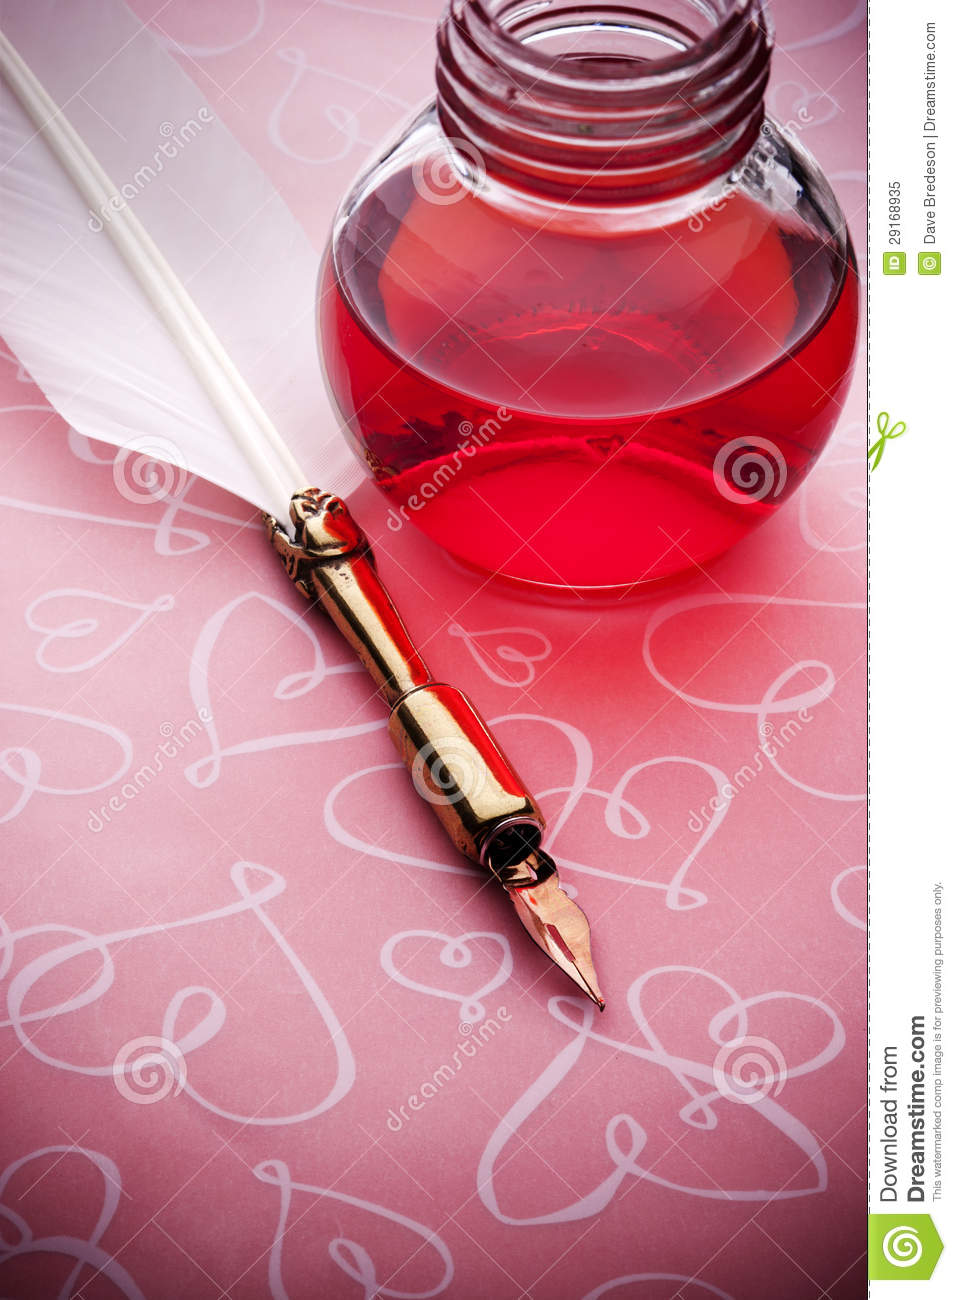 Pink Ink Hey Wardrobe Capsule Over Here Check It Out: Pink Ink Pen Love Background Stock Image